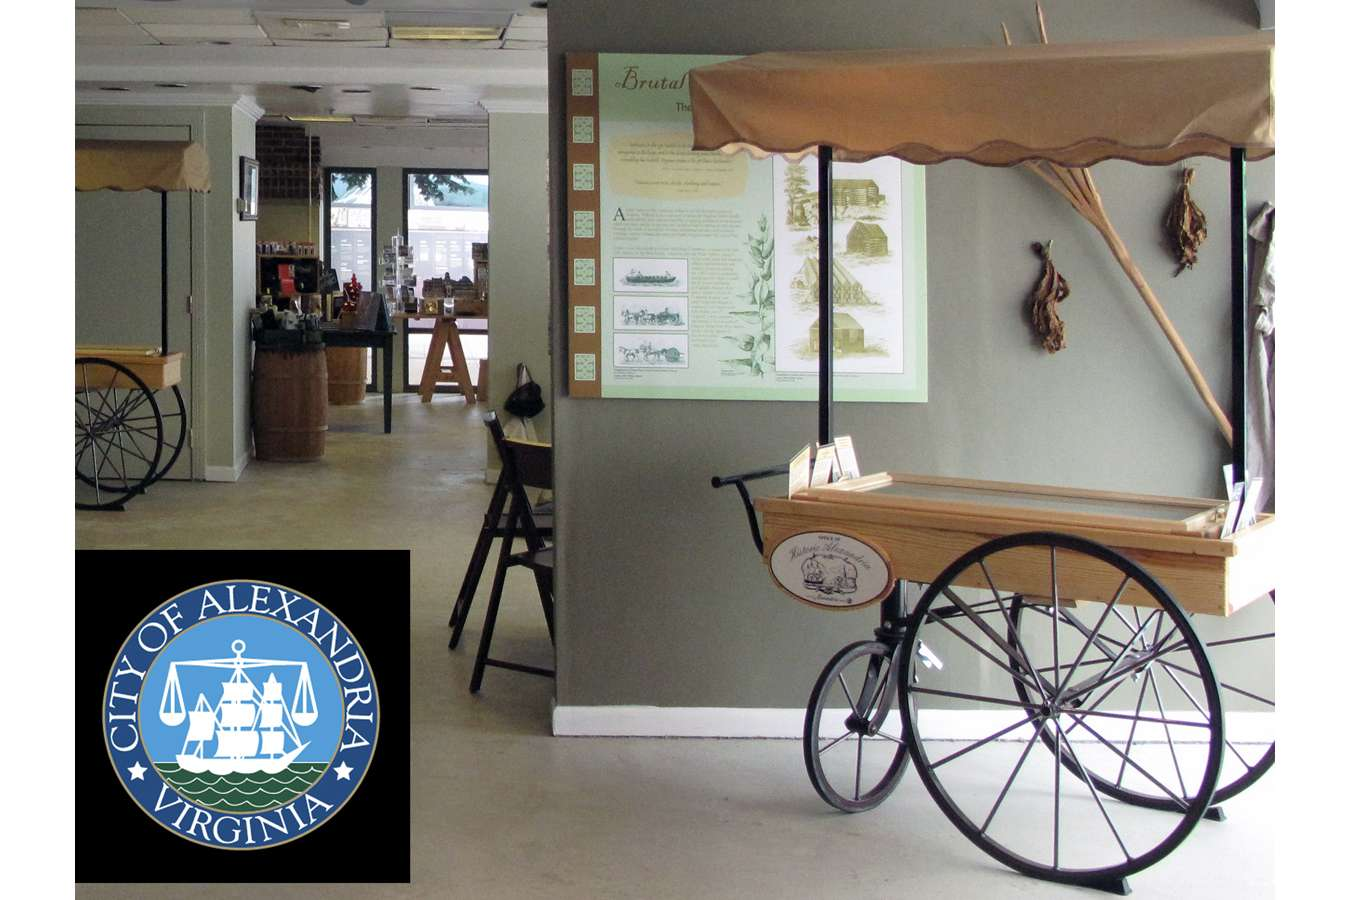 OHACart 1P : Docent carts and display graphics at the OHA waterfront store